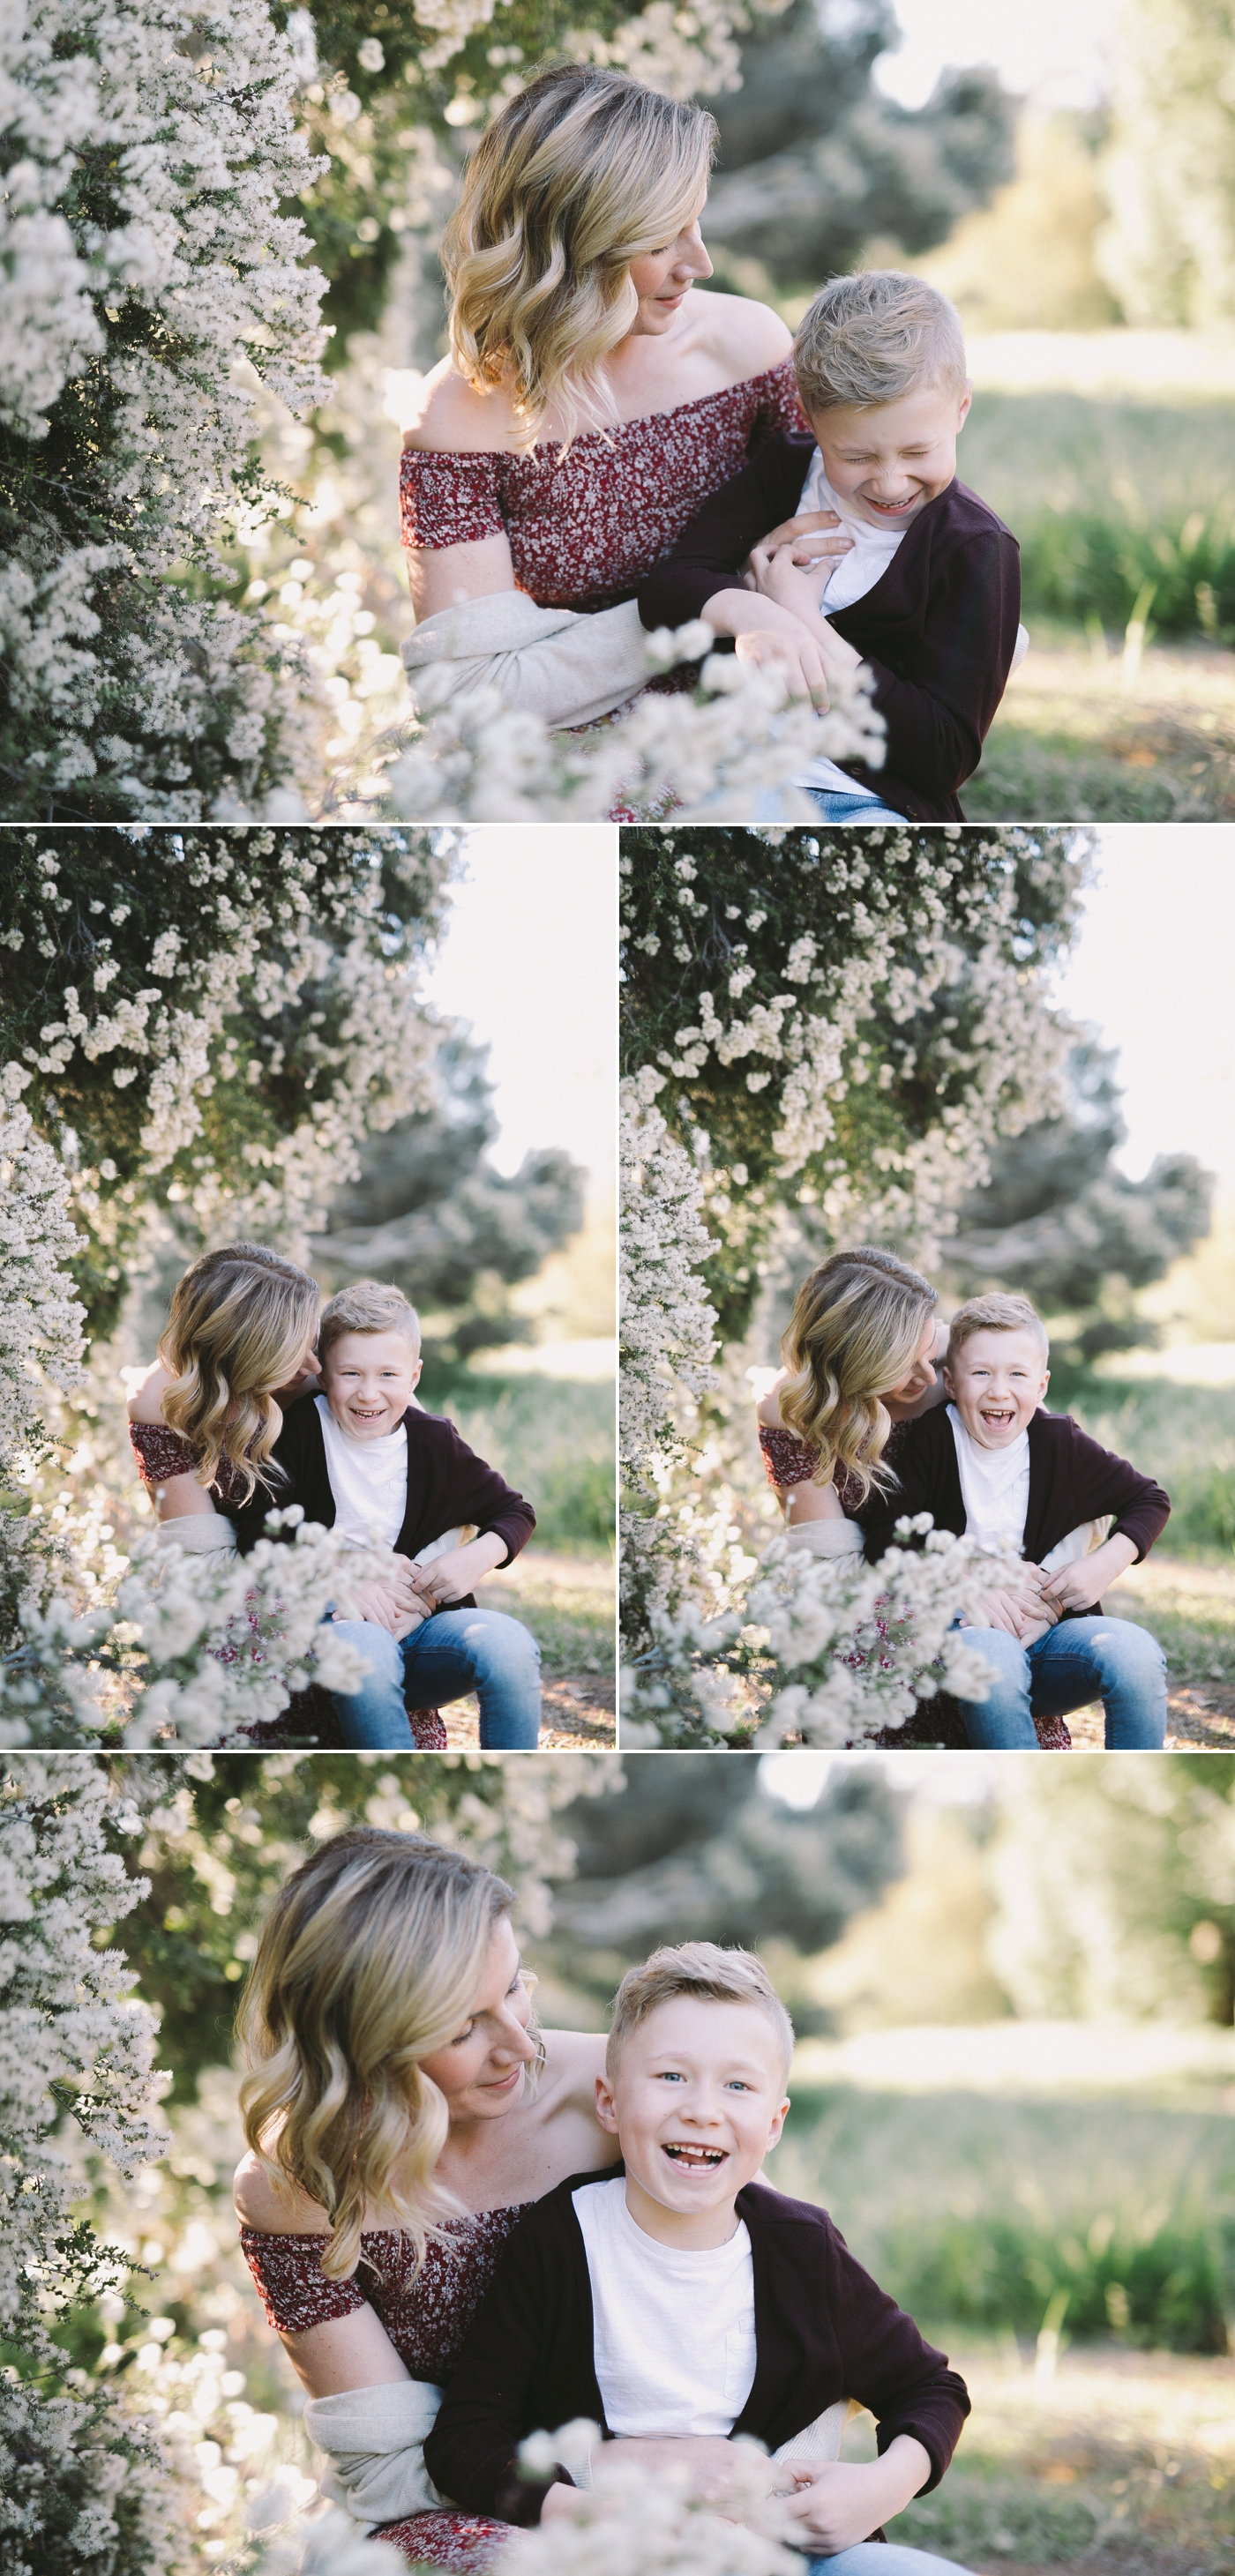 The Kammer Family - Natural Family Photographer in Adelaide - www.katherineschultzphotography.com 2